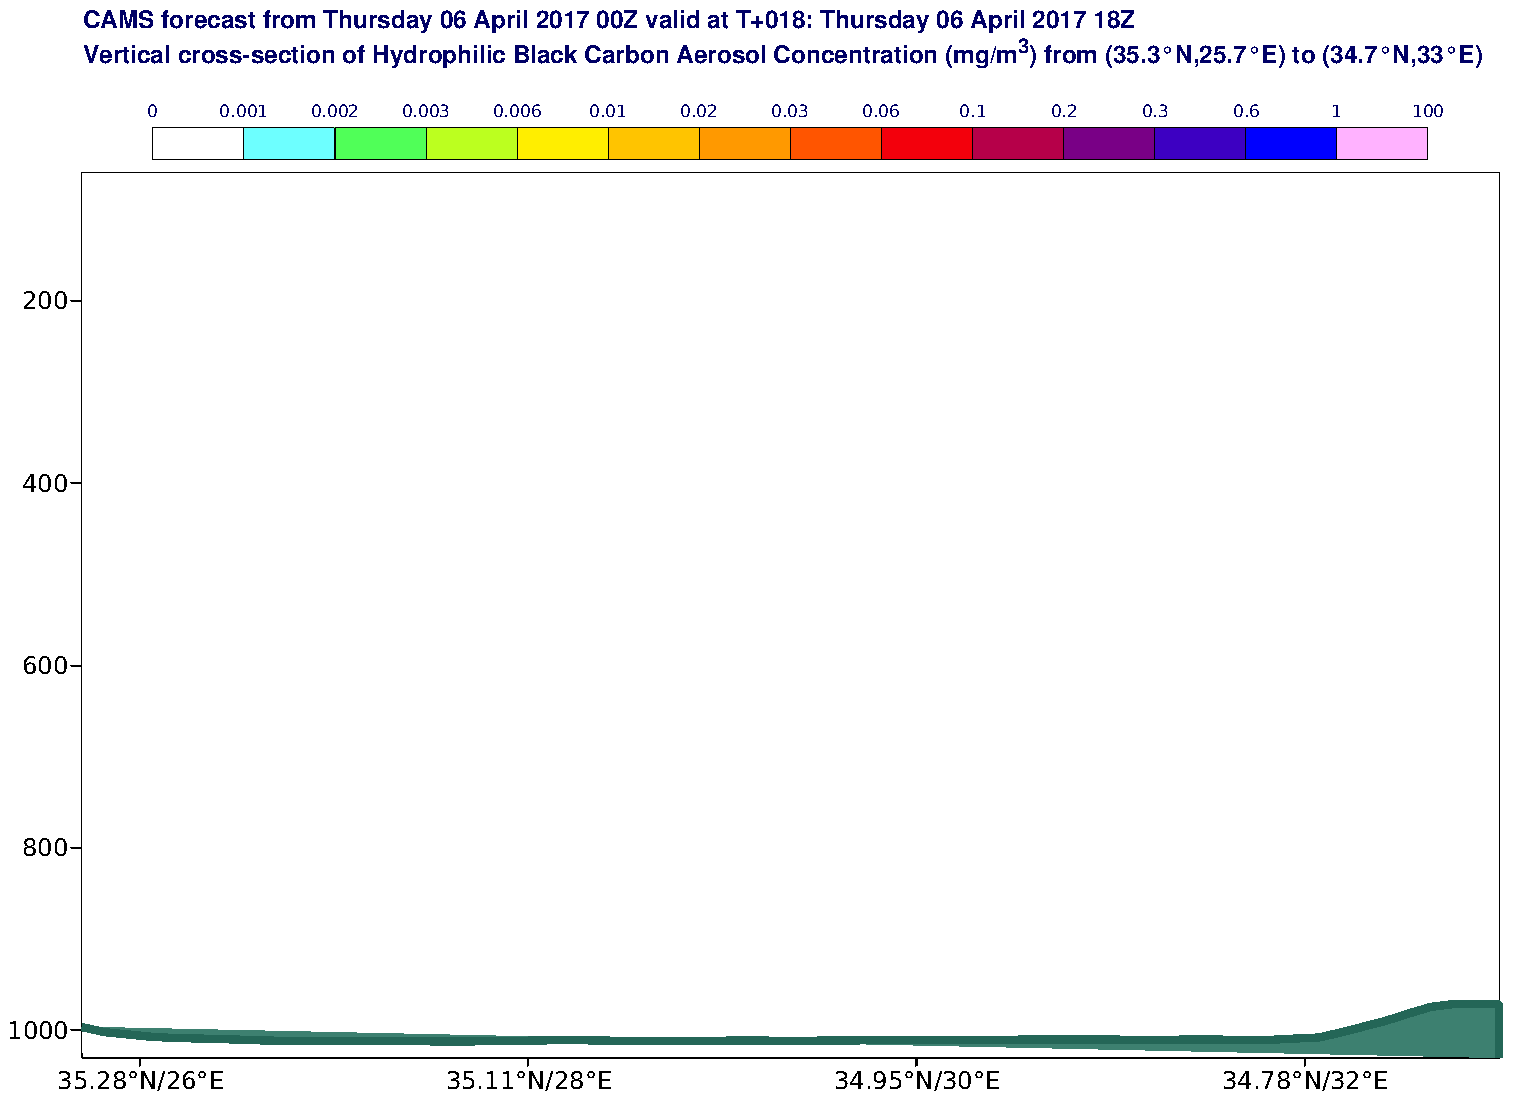 Vertical cross-section of Hydrophilic Black Carbon Aerosol Concentration (mg/m3) valid at T18 - 2017-04-06 18:00